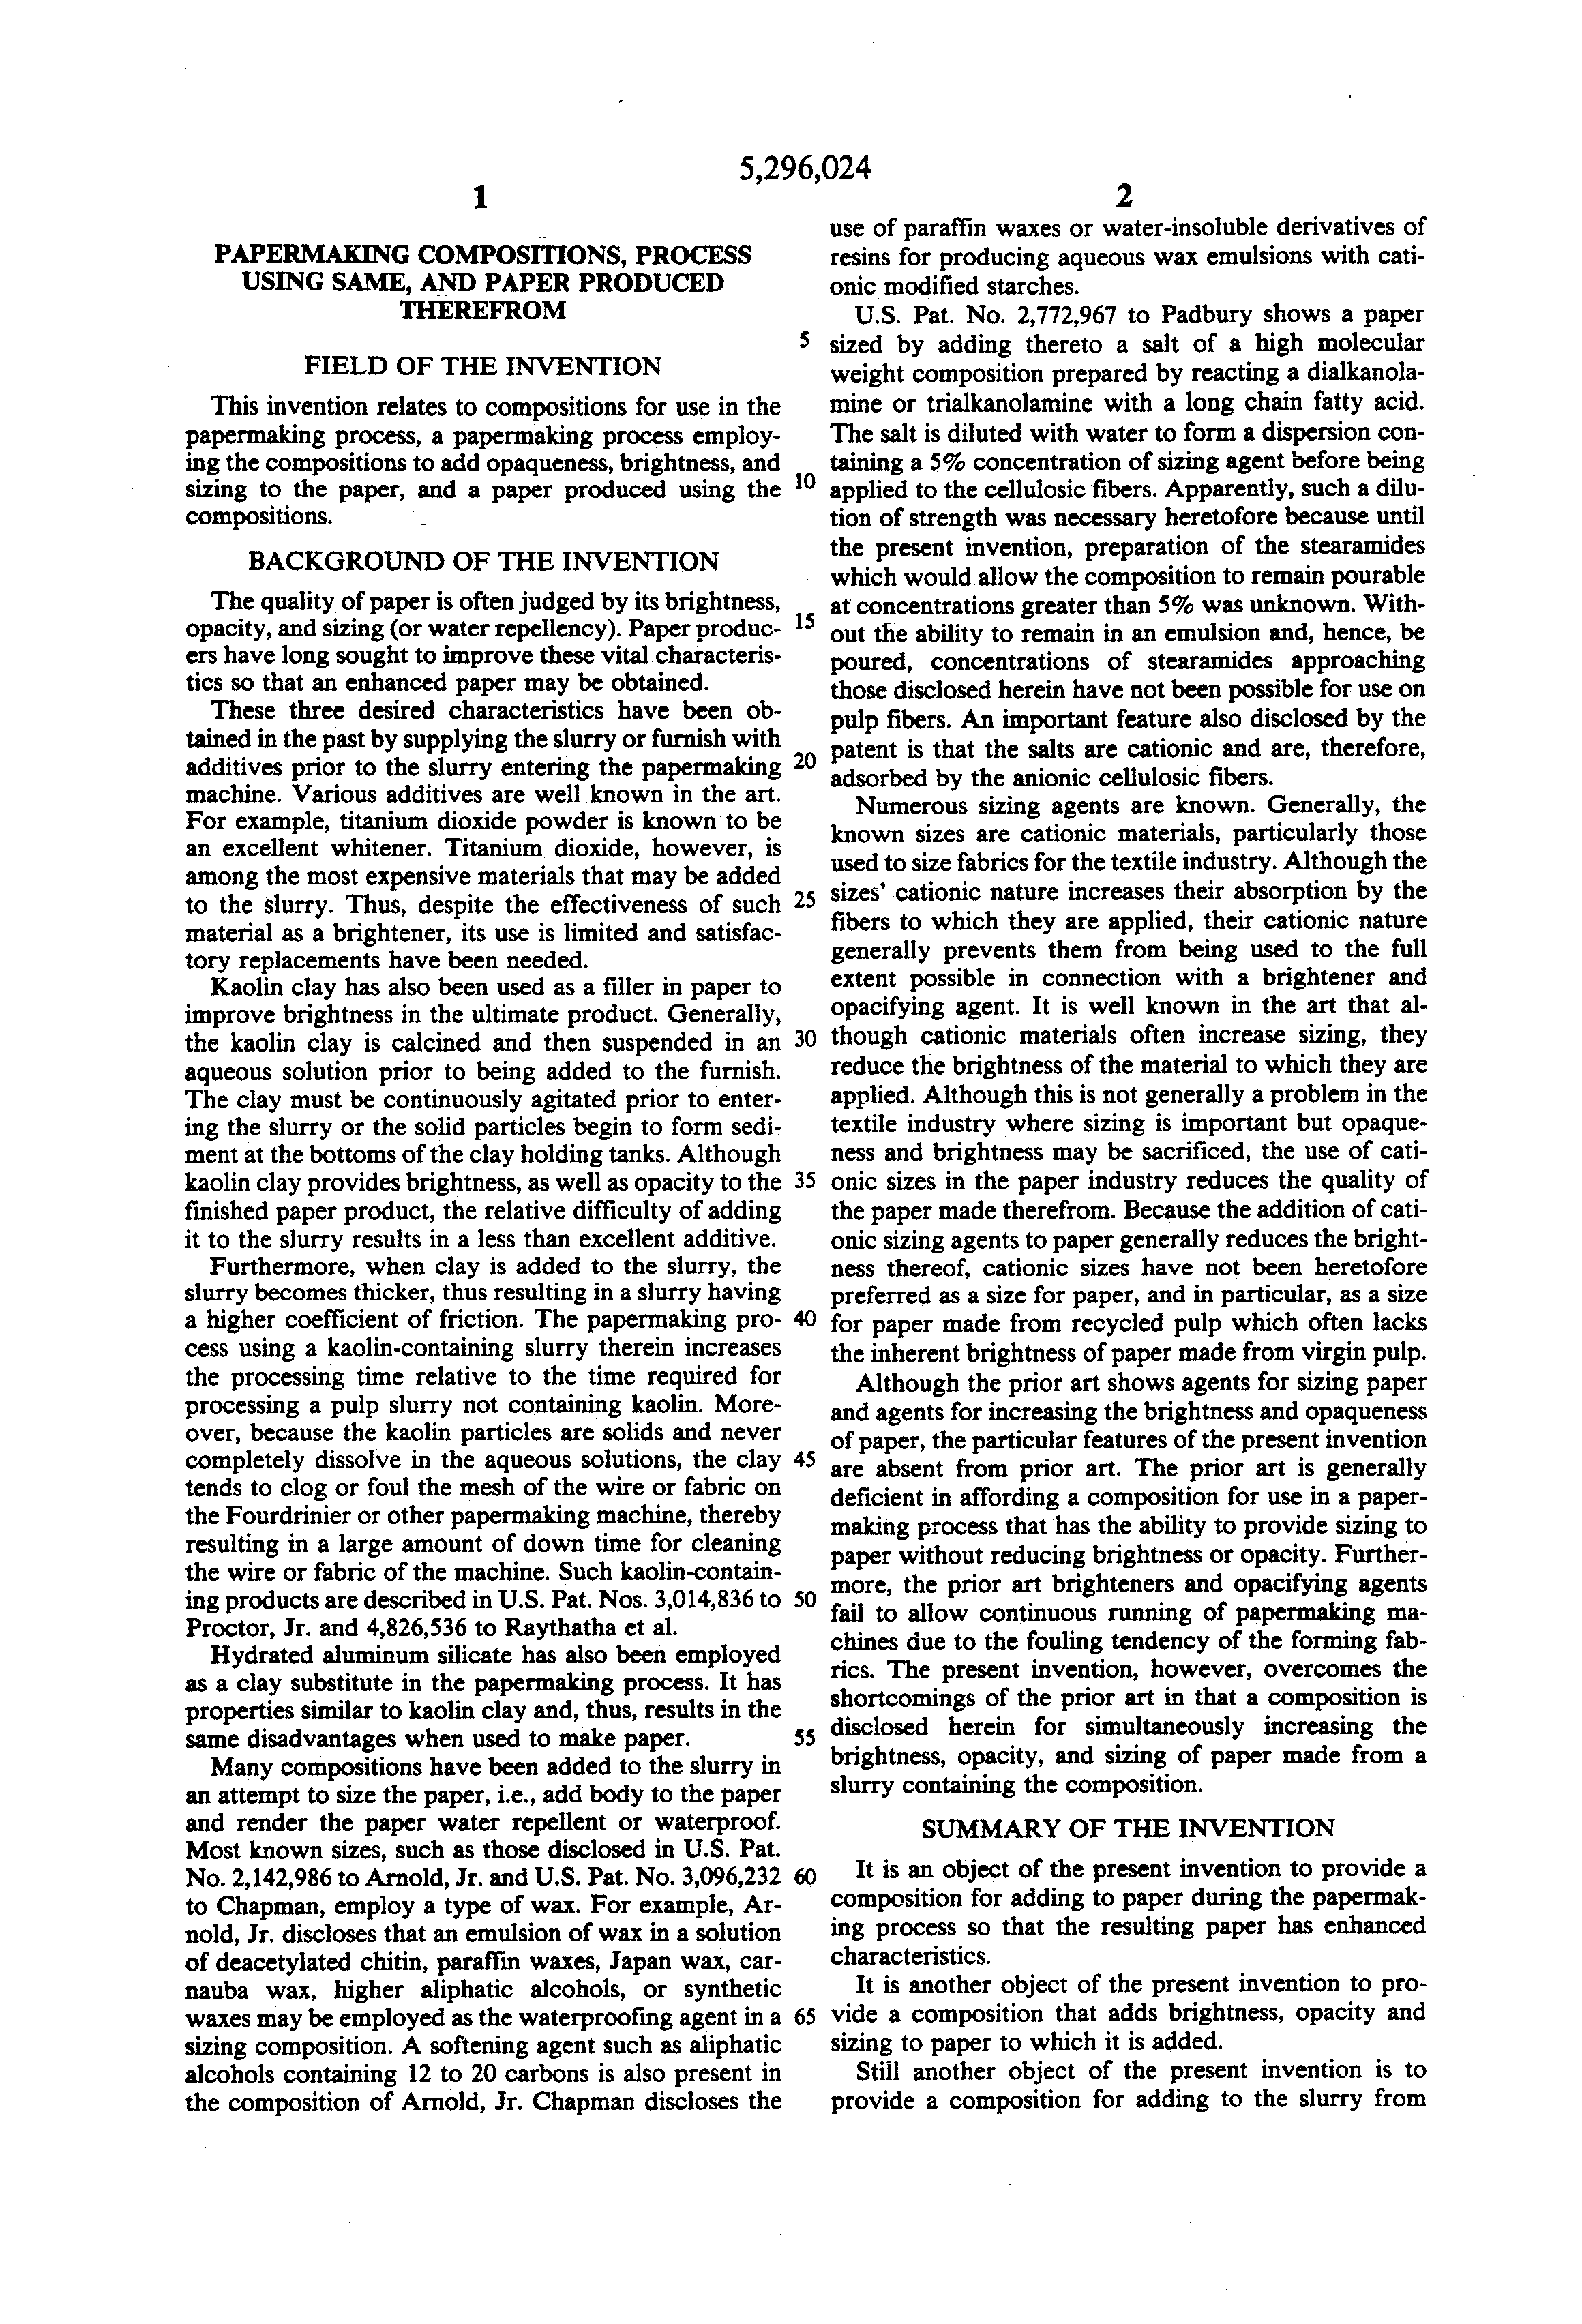 essay on composition poe